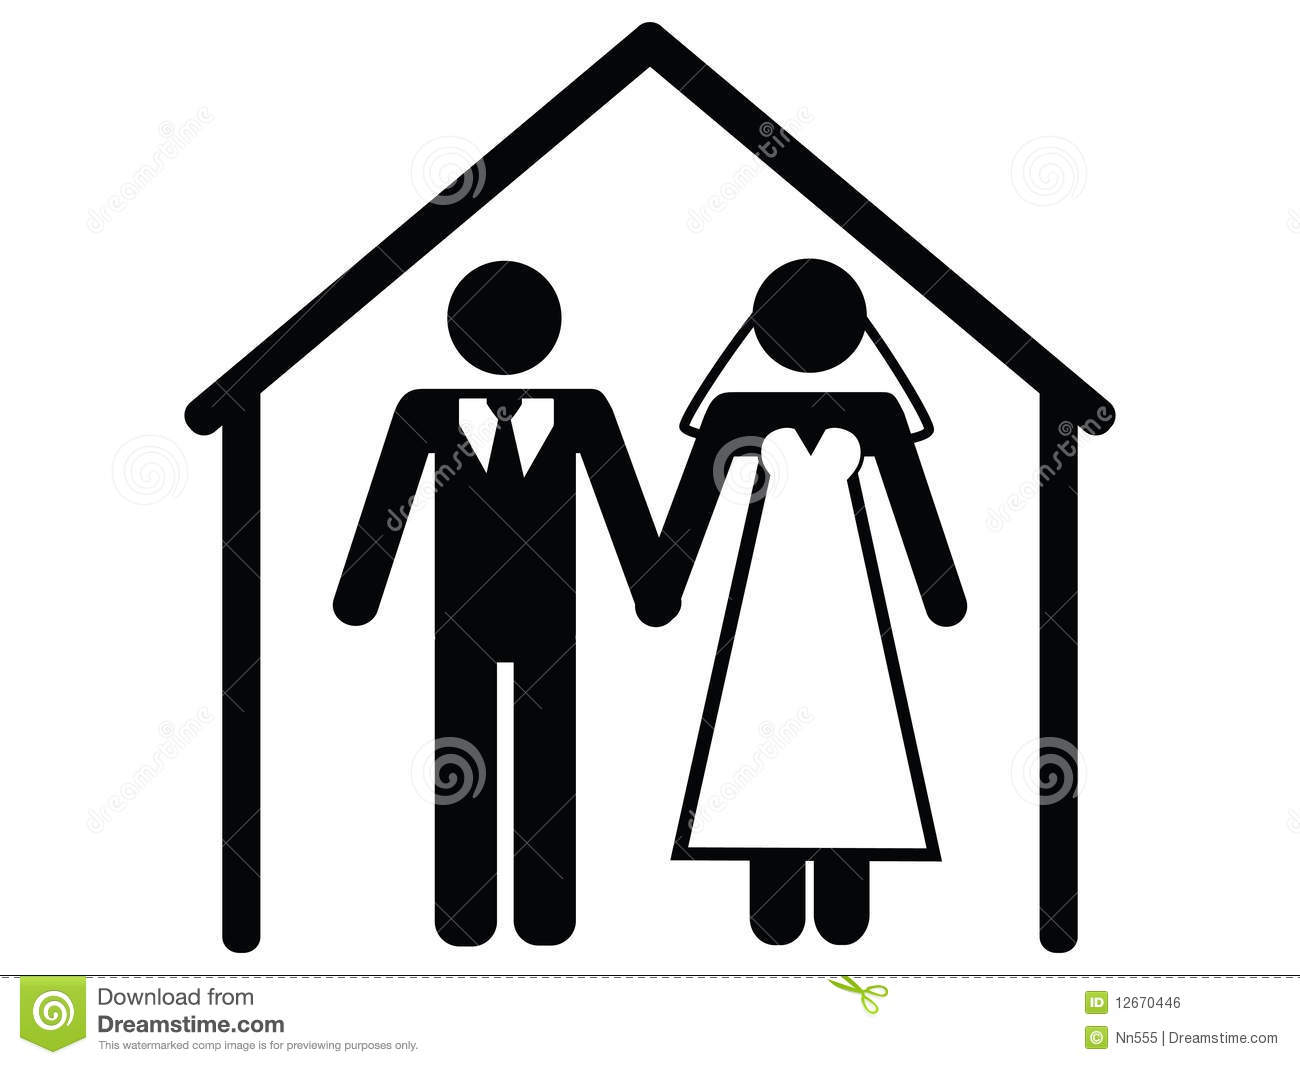 Royalty Free Stock Image Wedding Icon Image12670446 moreover Stock Photo Blue Square Lines Background Neon Laser Vector Image34725250 besides Royalty Free Stock Photo Gothic Arches Image24755 together with Mr Benn Cartoon besides Royalty Free Stock Photo Victorian Manor House York England Image28755525. on house room animation